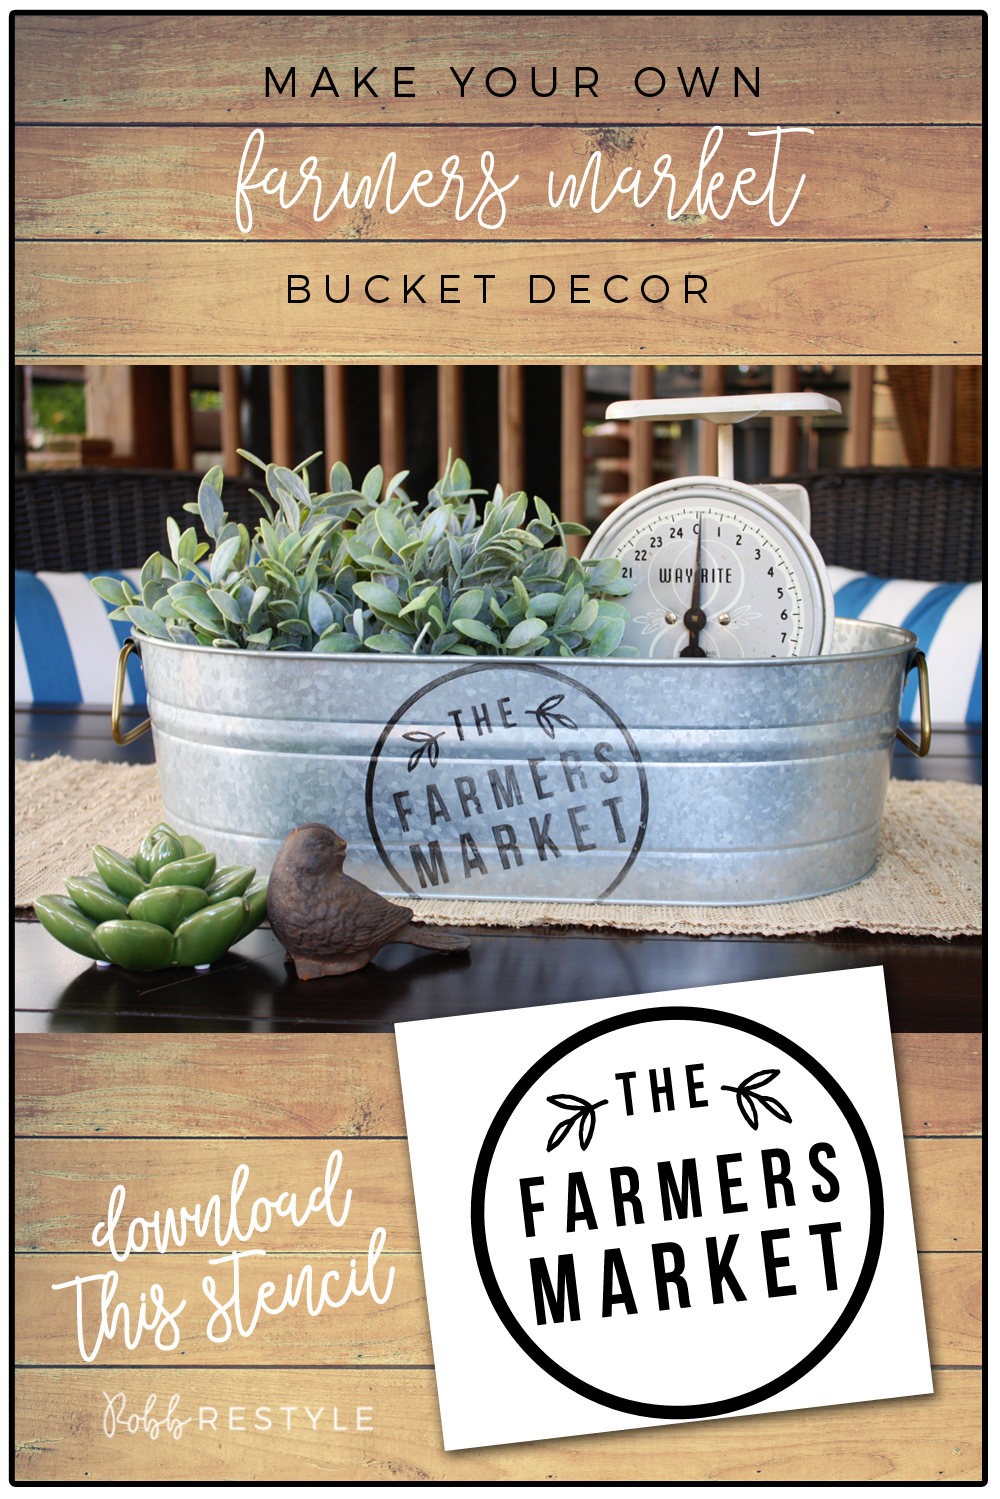 How to make farmers market bucket decor